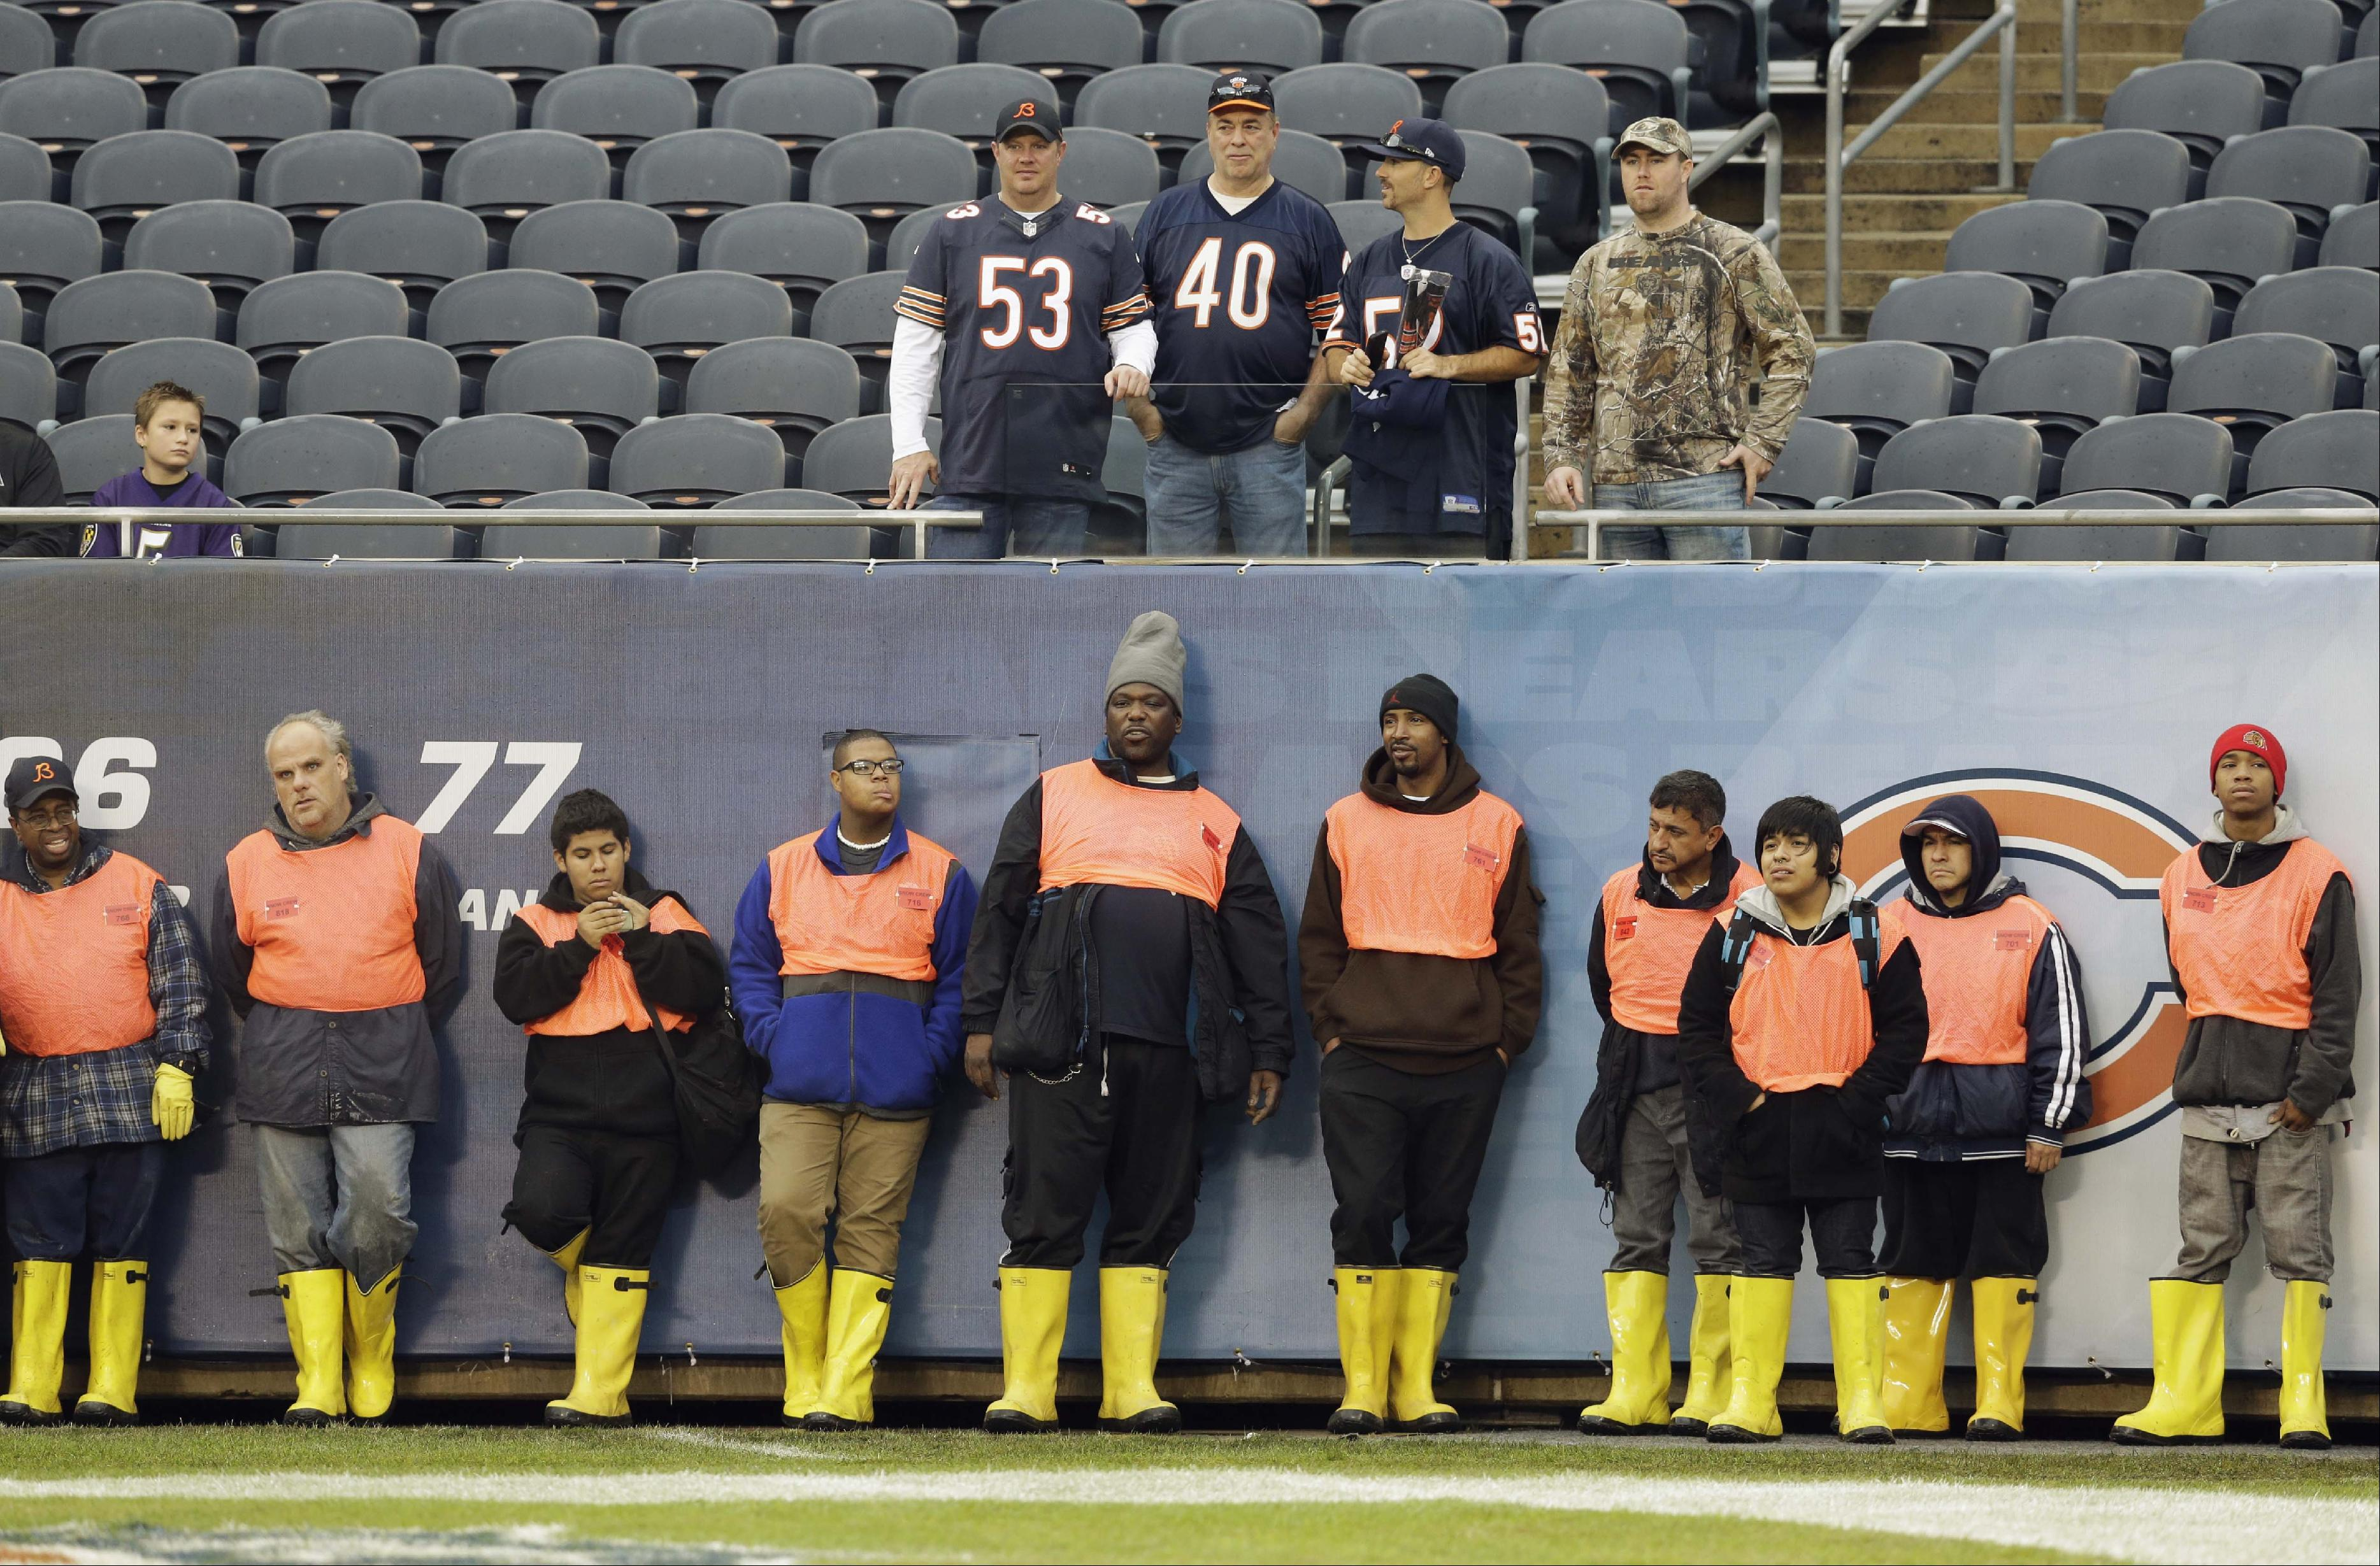 Soldier Field groundskeepers line up against the wall and a few Chicago Bears fans watch as players warm up before an NFL football against the Baltimore Ravens, Sunday, Nov. 17, 2013, in Chicago